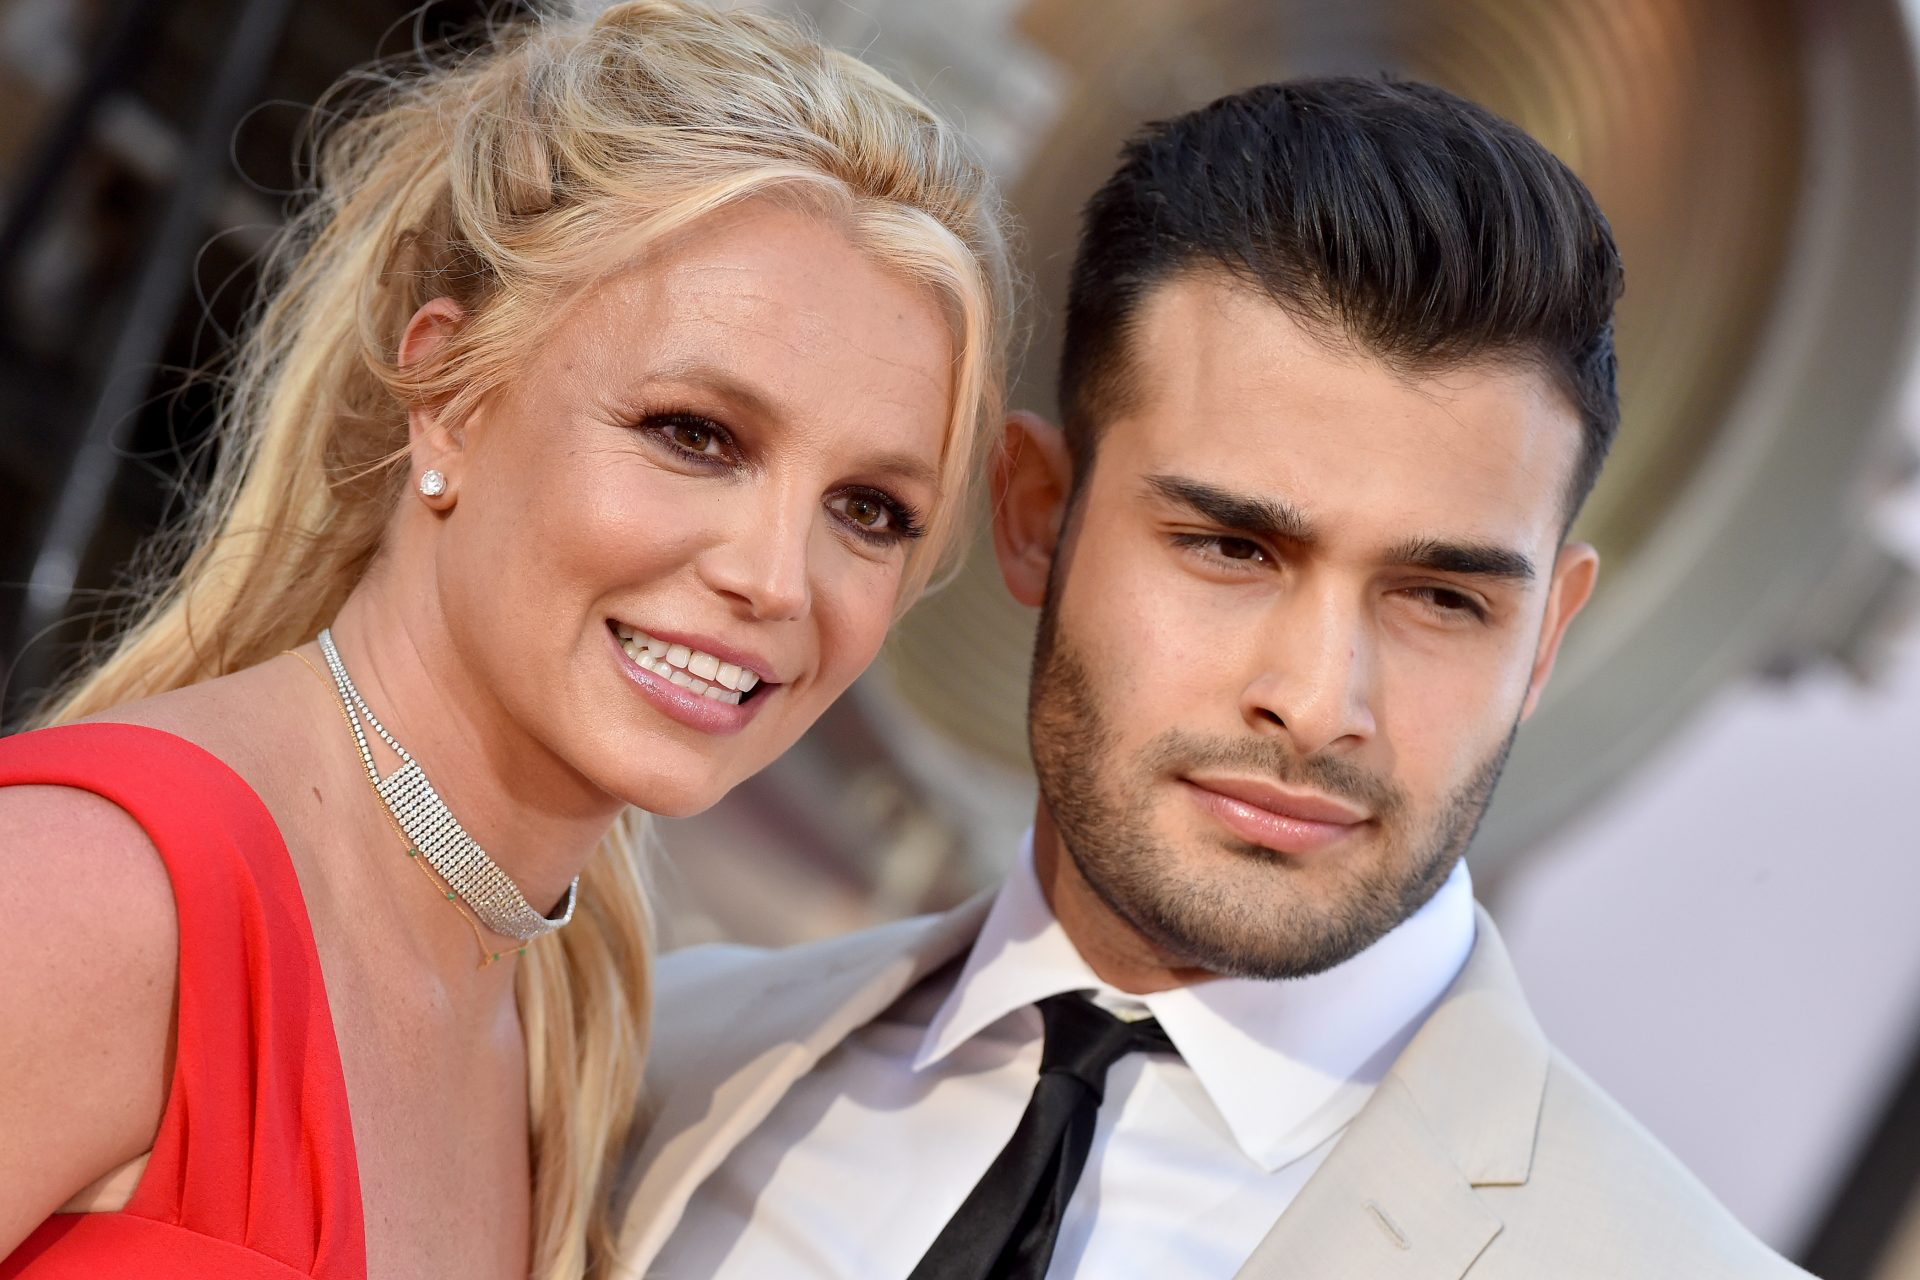 Britney is free and getting married! Her story in photos